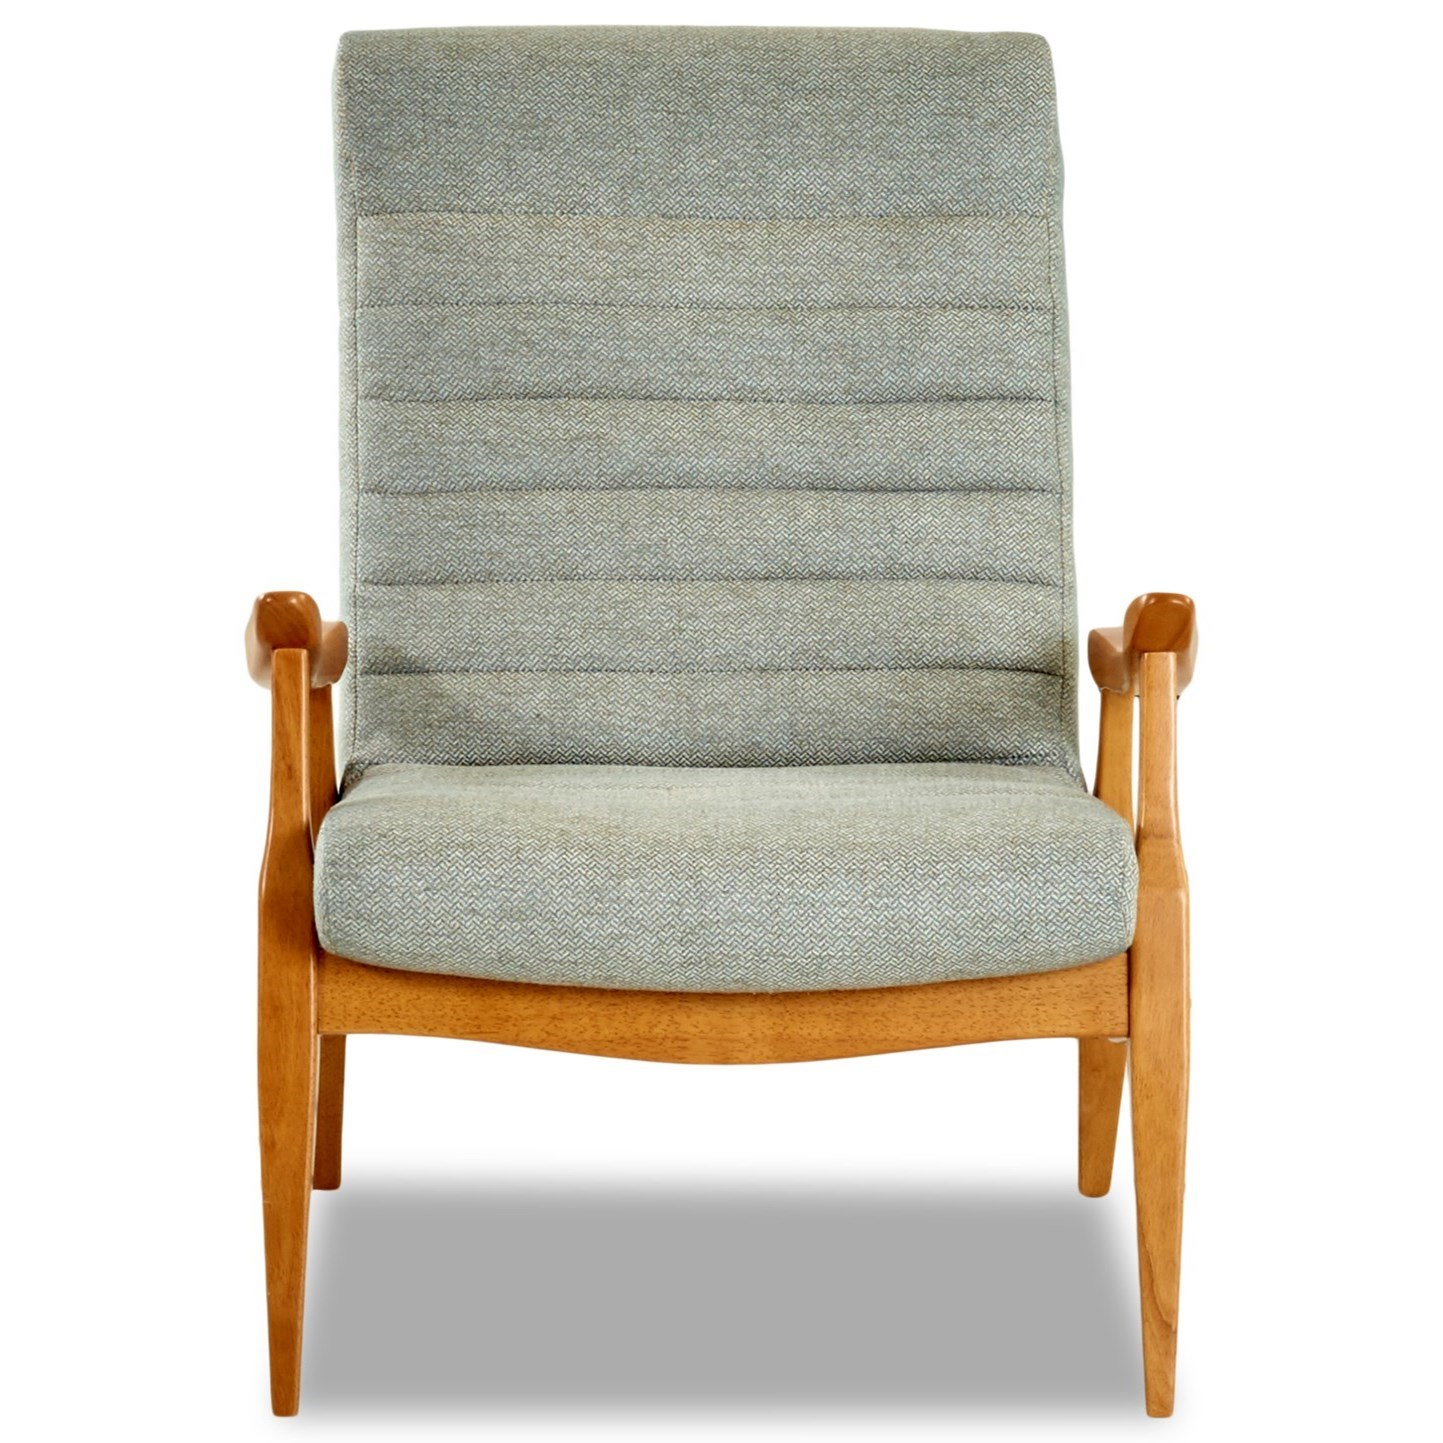 Chairs and Accents Hans Chair by Klaussner at H.L. Stephens